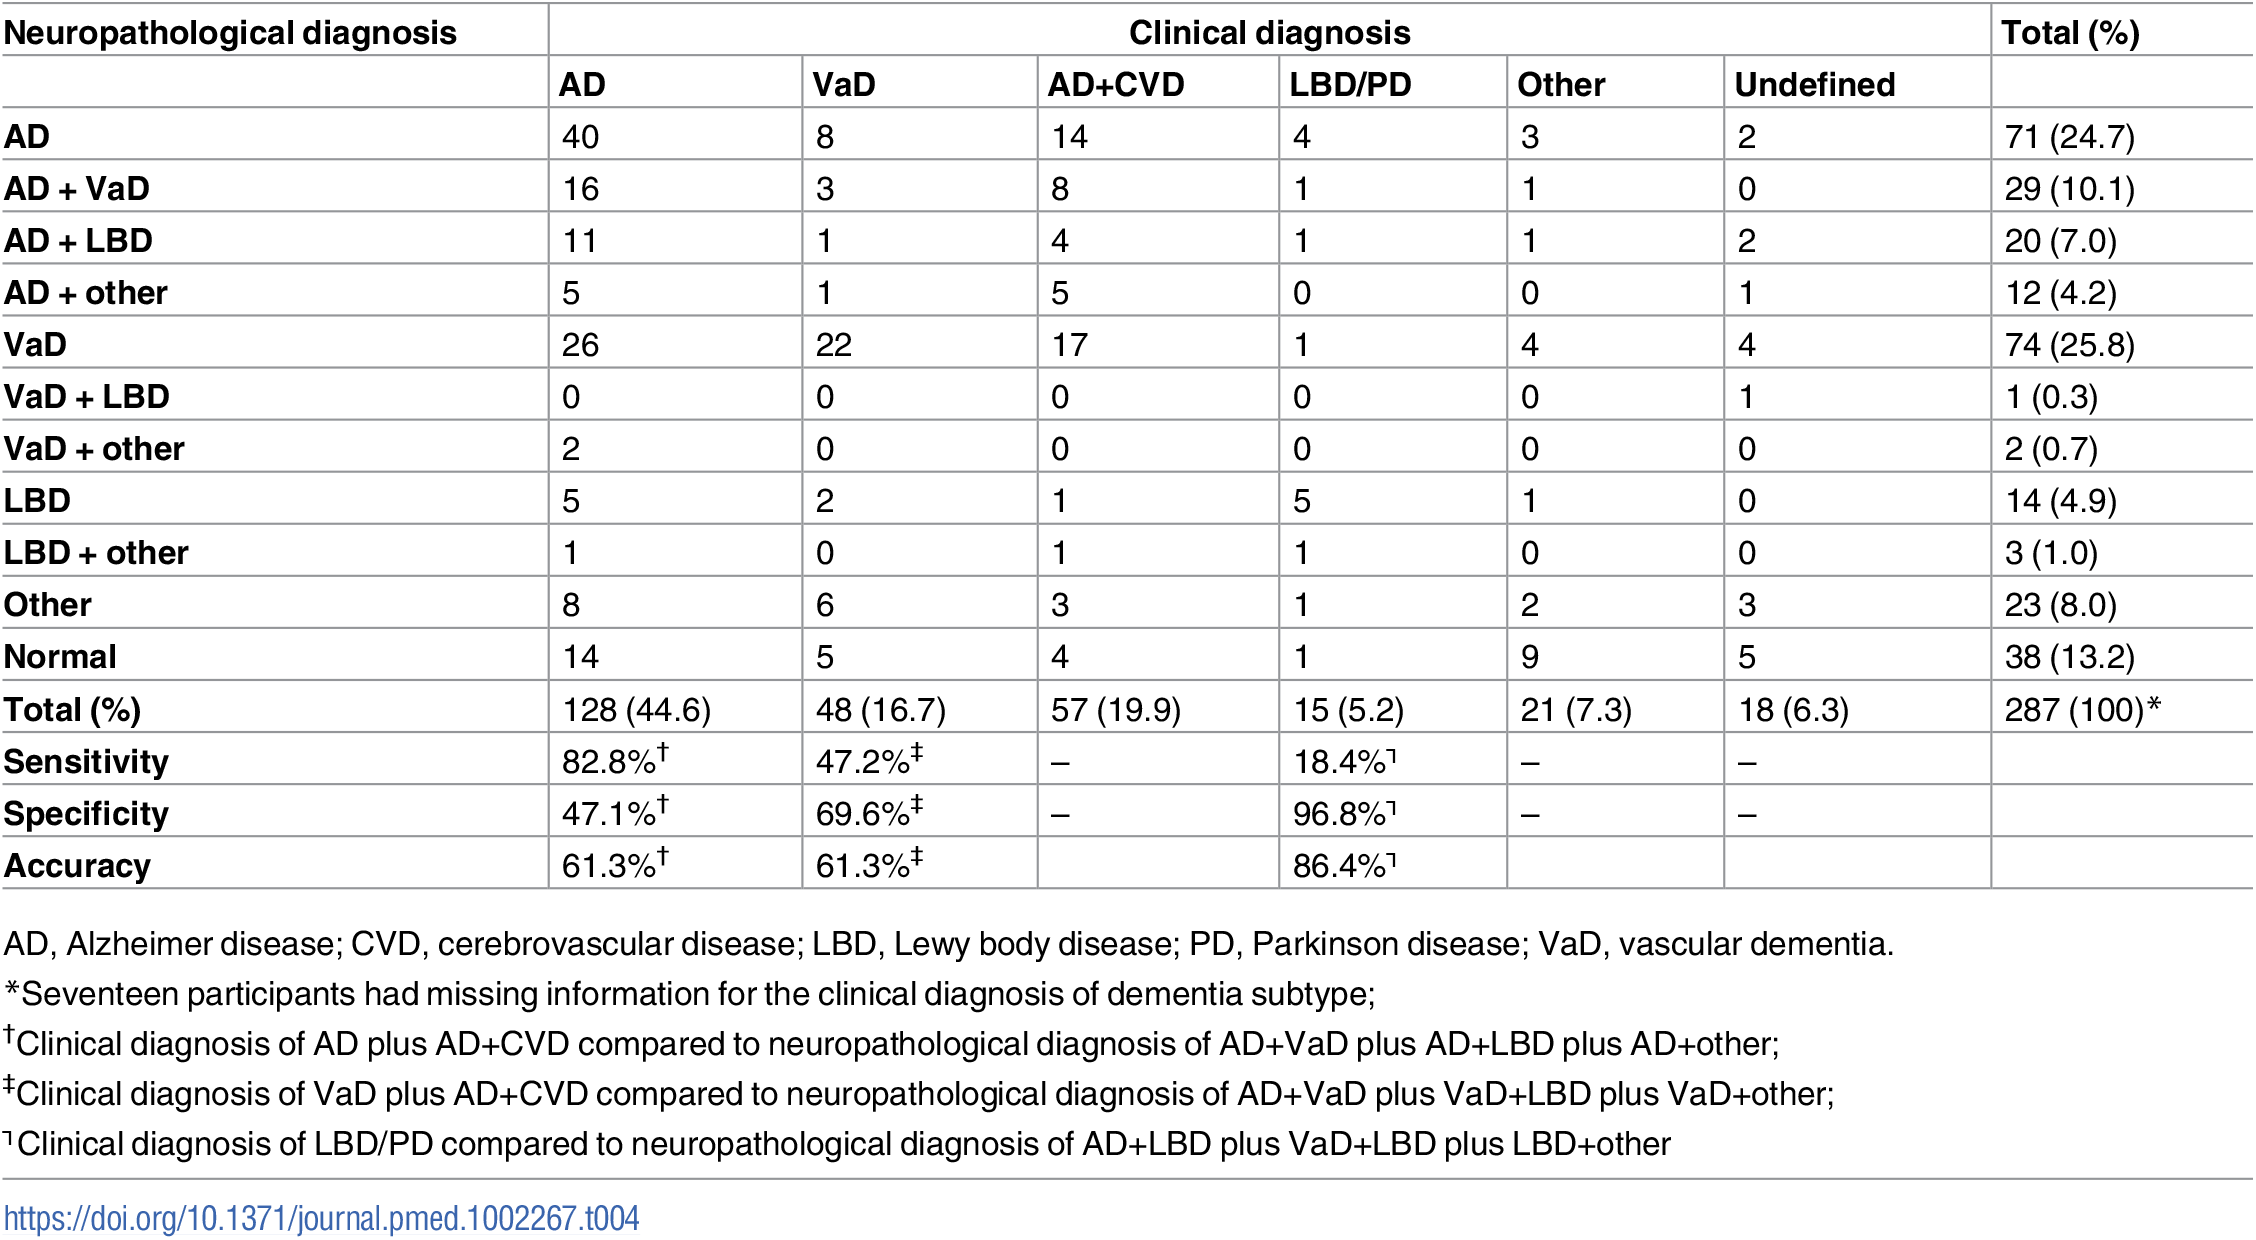 Comparison between clinical and neuropathological diagnoses among participants with dementia (CDR ≥ 1) (<i>n</i> = 287).